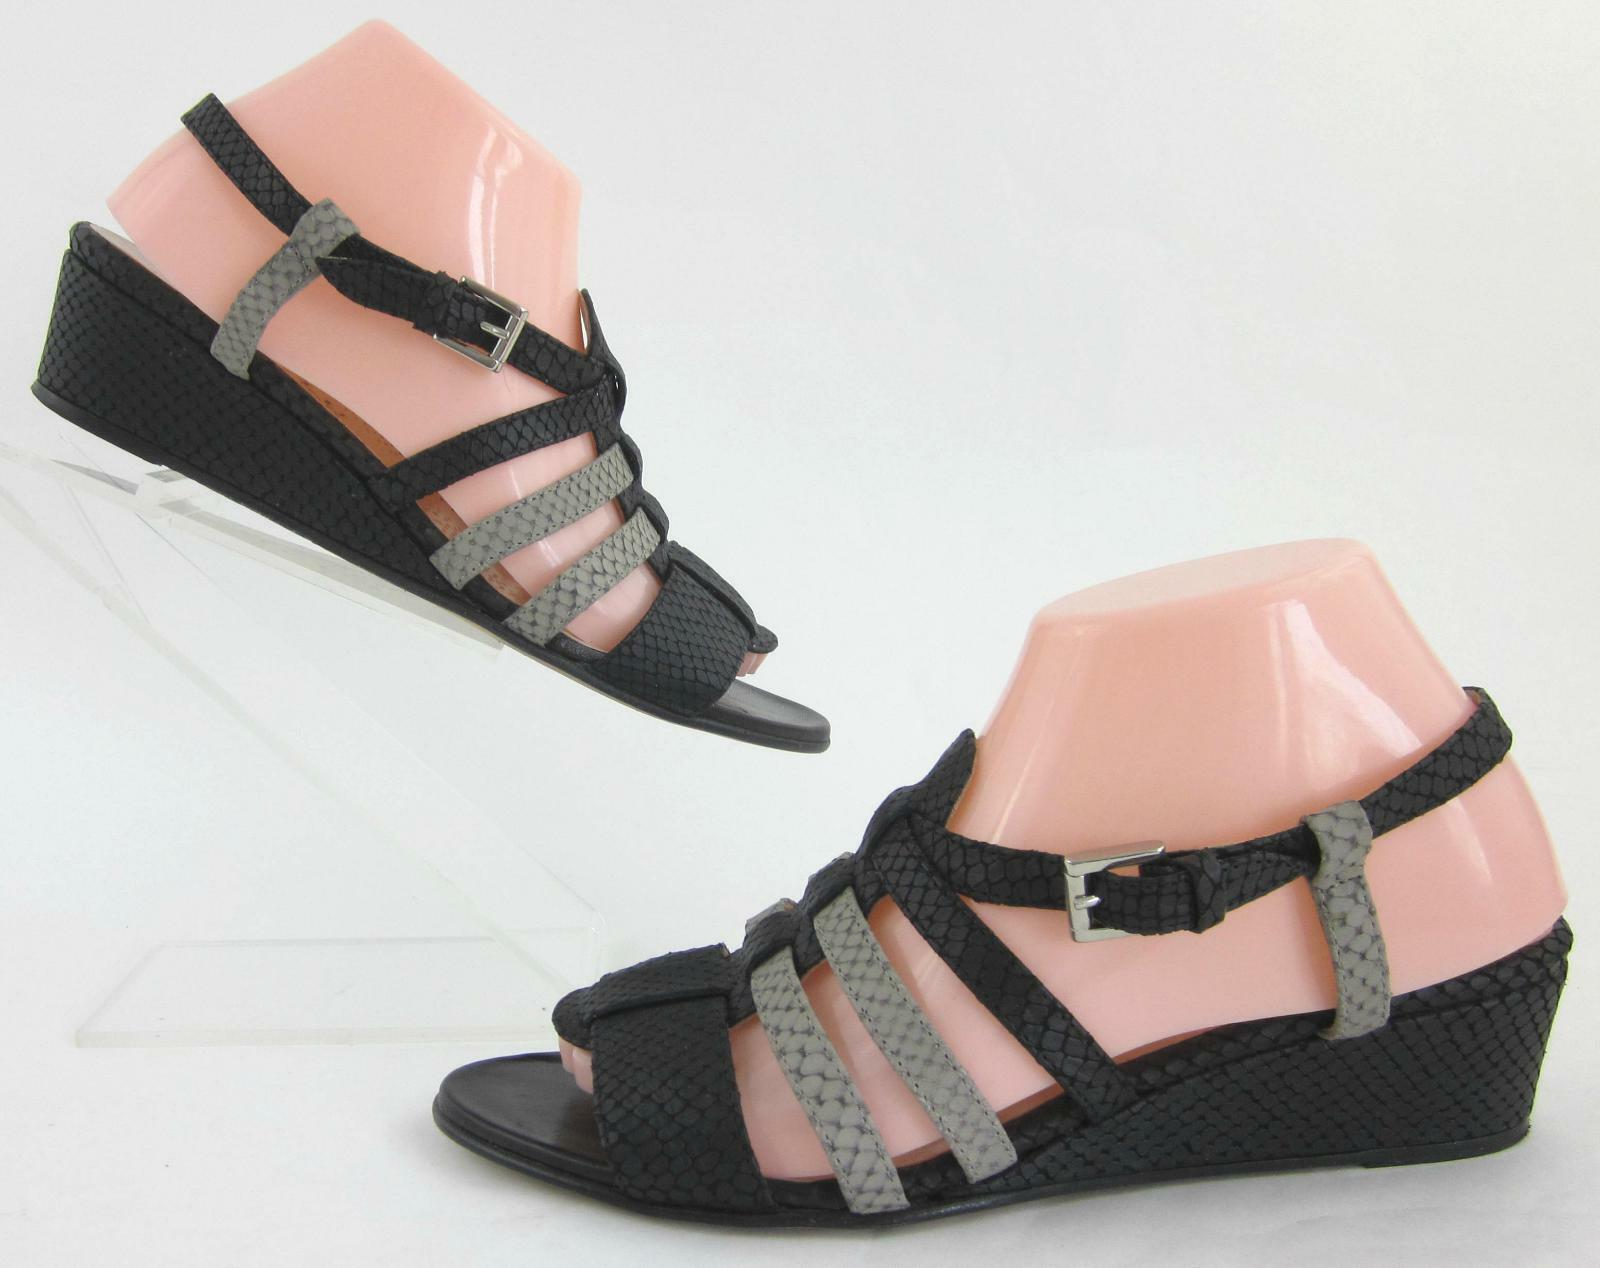 Anyi Lu 'Libby' Slingback Sandals Textured 8-8.5 Leather Black Gray US 8-8.5 Textured b68ad1